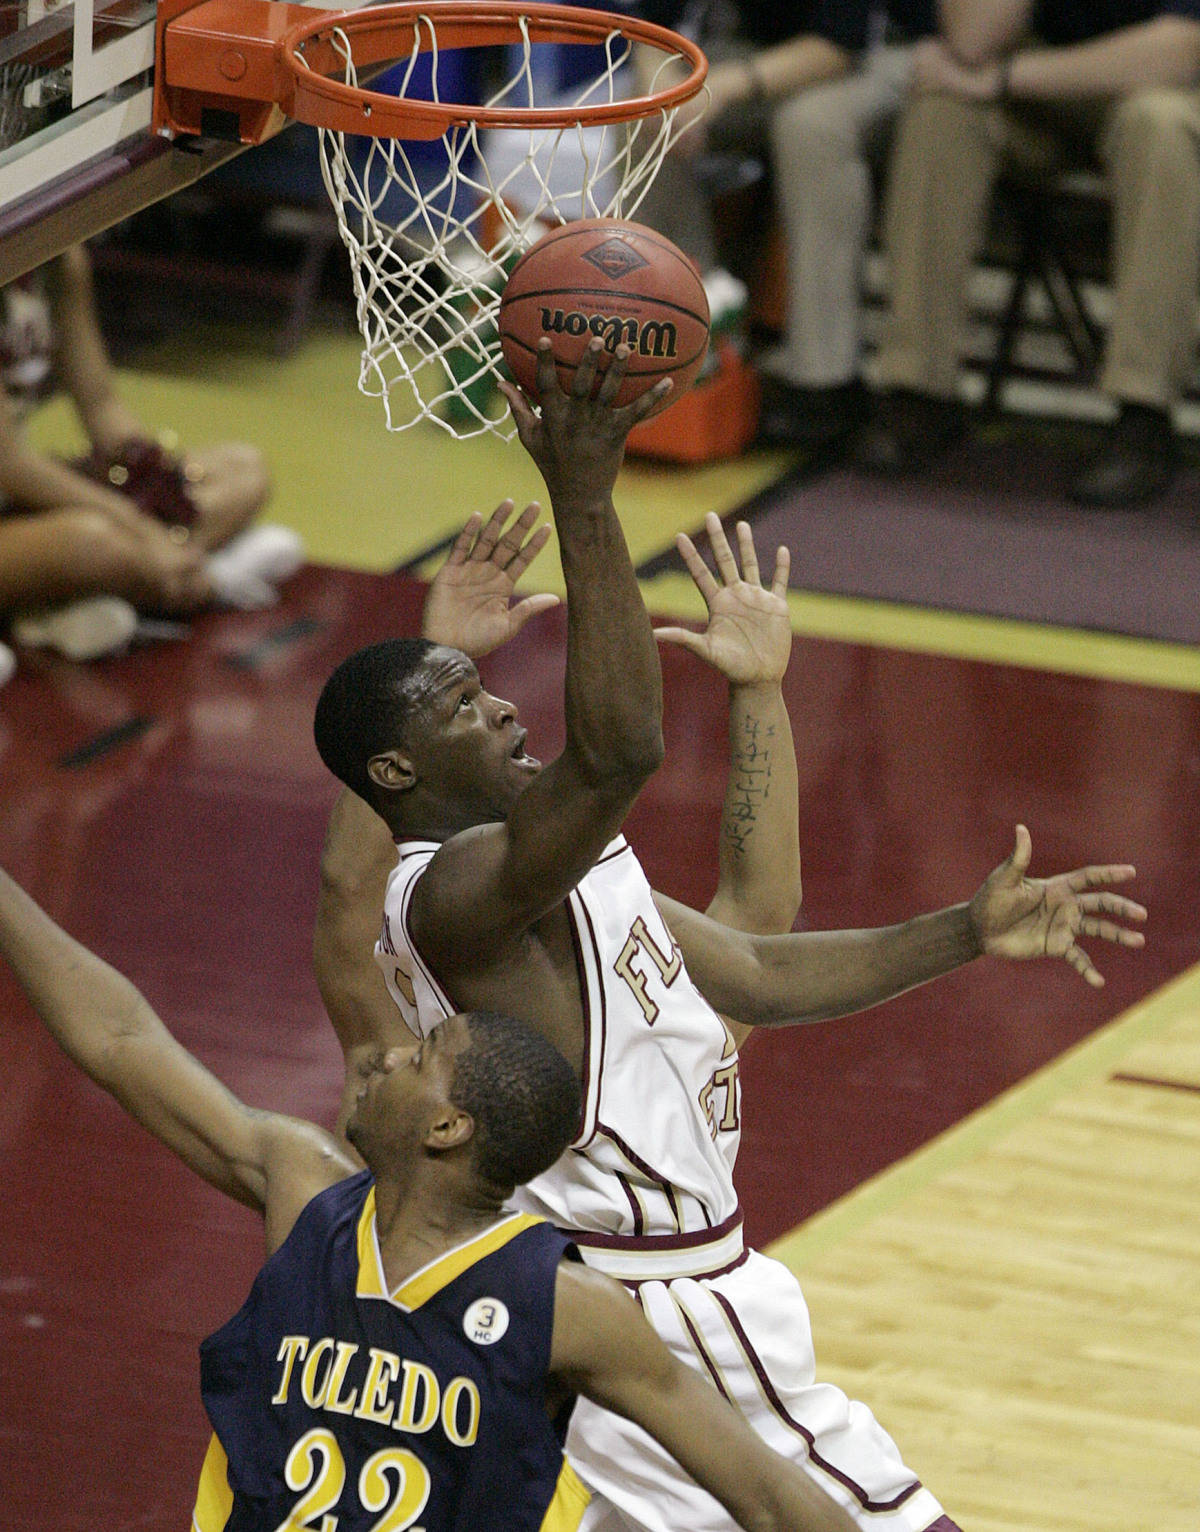 Florida State's Al Thornton spins past a Toledo defender. (AP Photo/Steve Cannon)